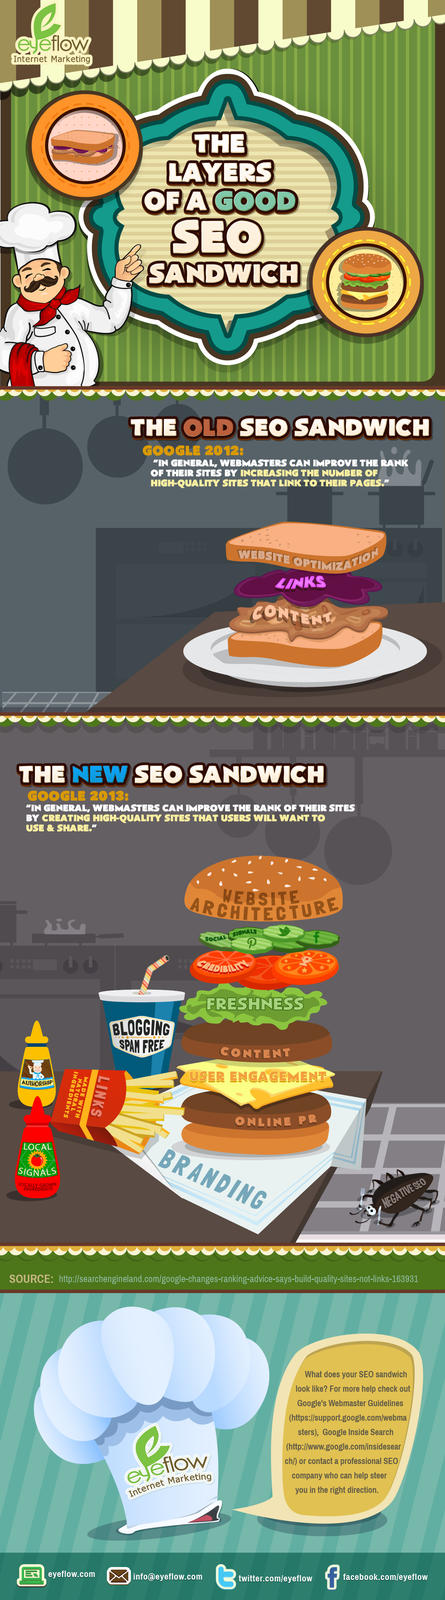 The Layers of a Good SEO Sandwich